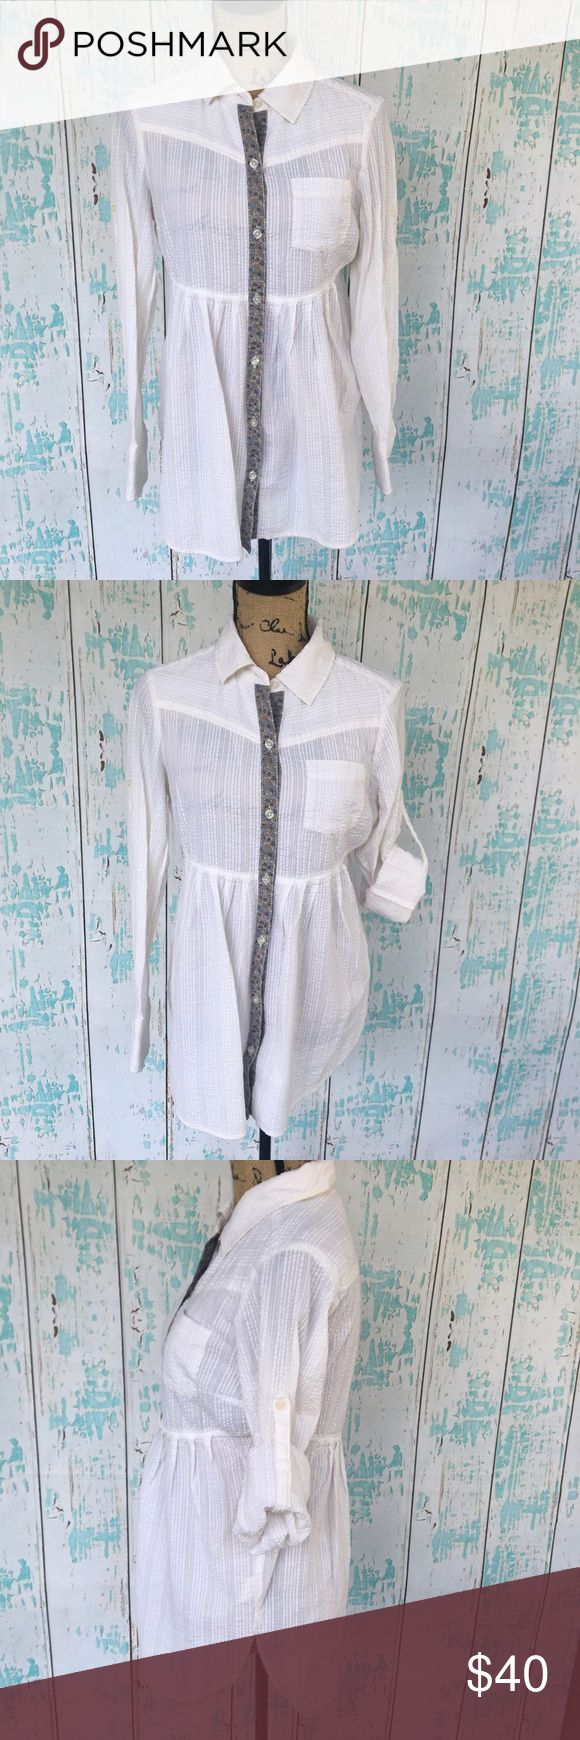 "Free People button down white tunic size 8 Free People button down white tunic size 8. The sleeves can be rolled up as well as shown.   🍥Bundle deals available (I carry various sizes and brands in my closet): 2 items 10% off, 3 items 15% off, 4 items or more 20% off.  🍥No trades, modeling, or lowball offers please. 🍥All reasonable offers accepted only through ""offer"" button. Please submit offer willing to pay as I prefer to not counteroffer. 🍥Happy Poshing! Free People Tops Tunics"